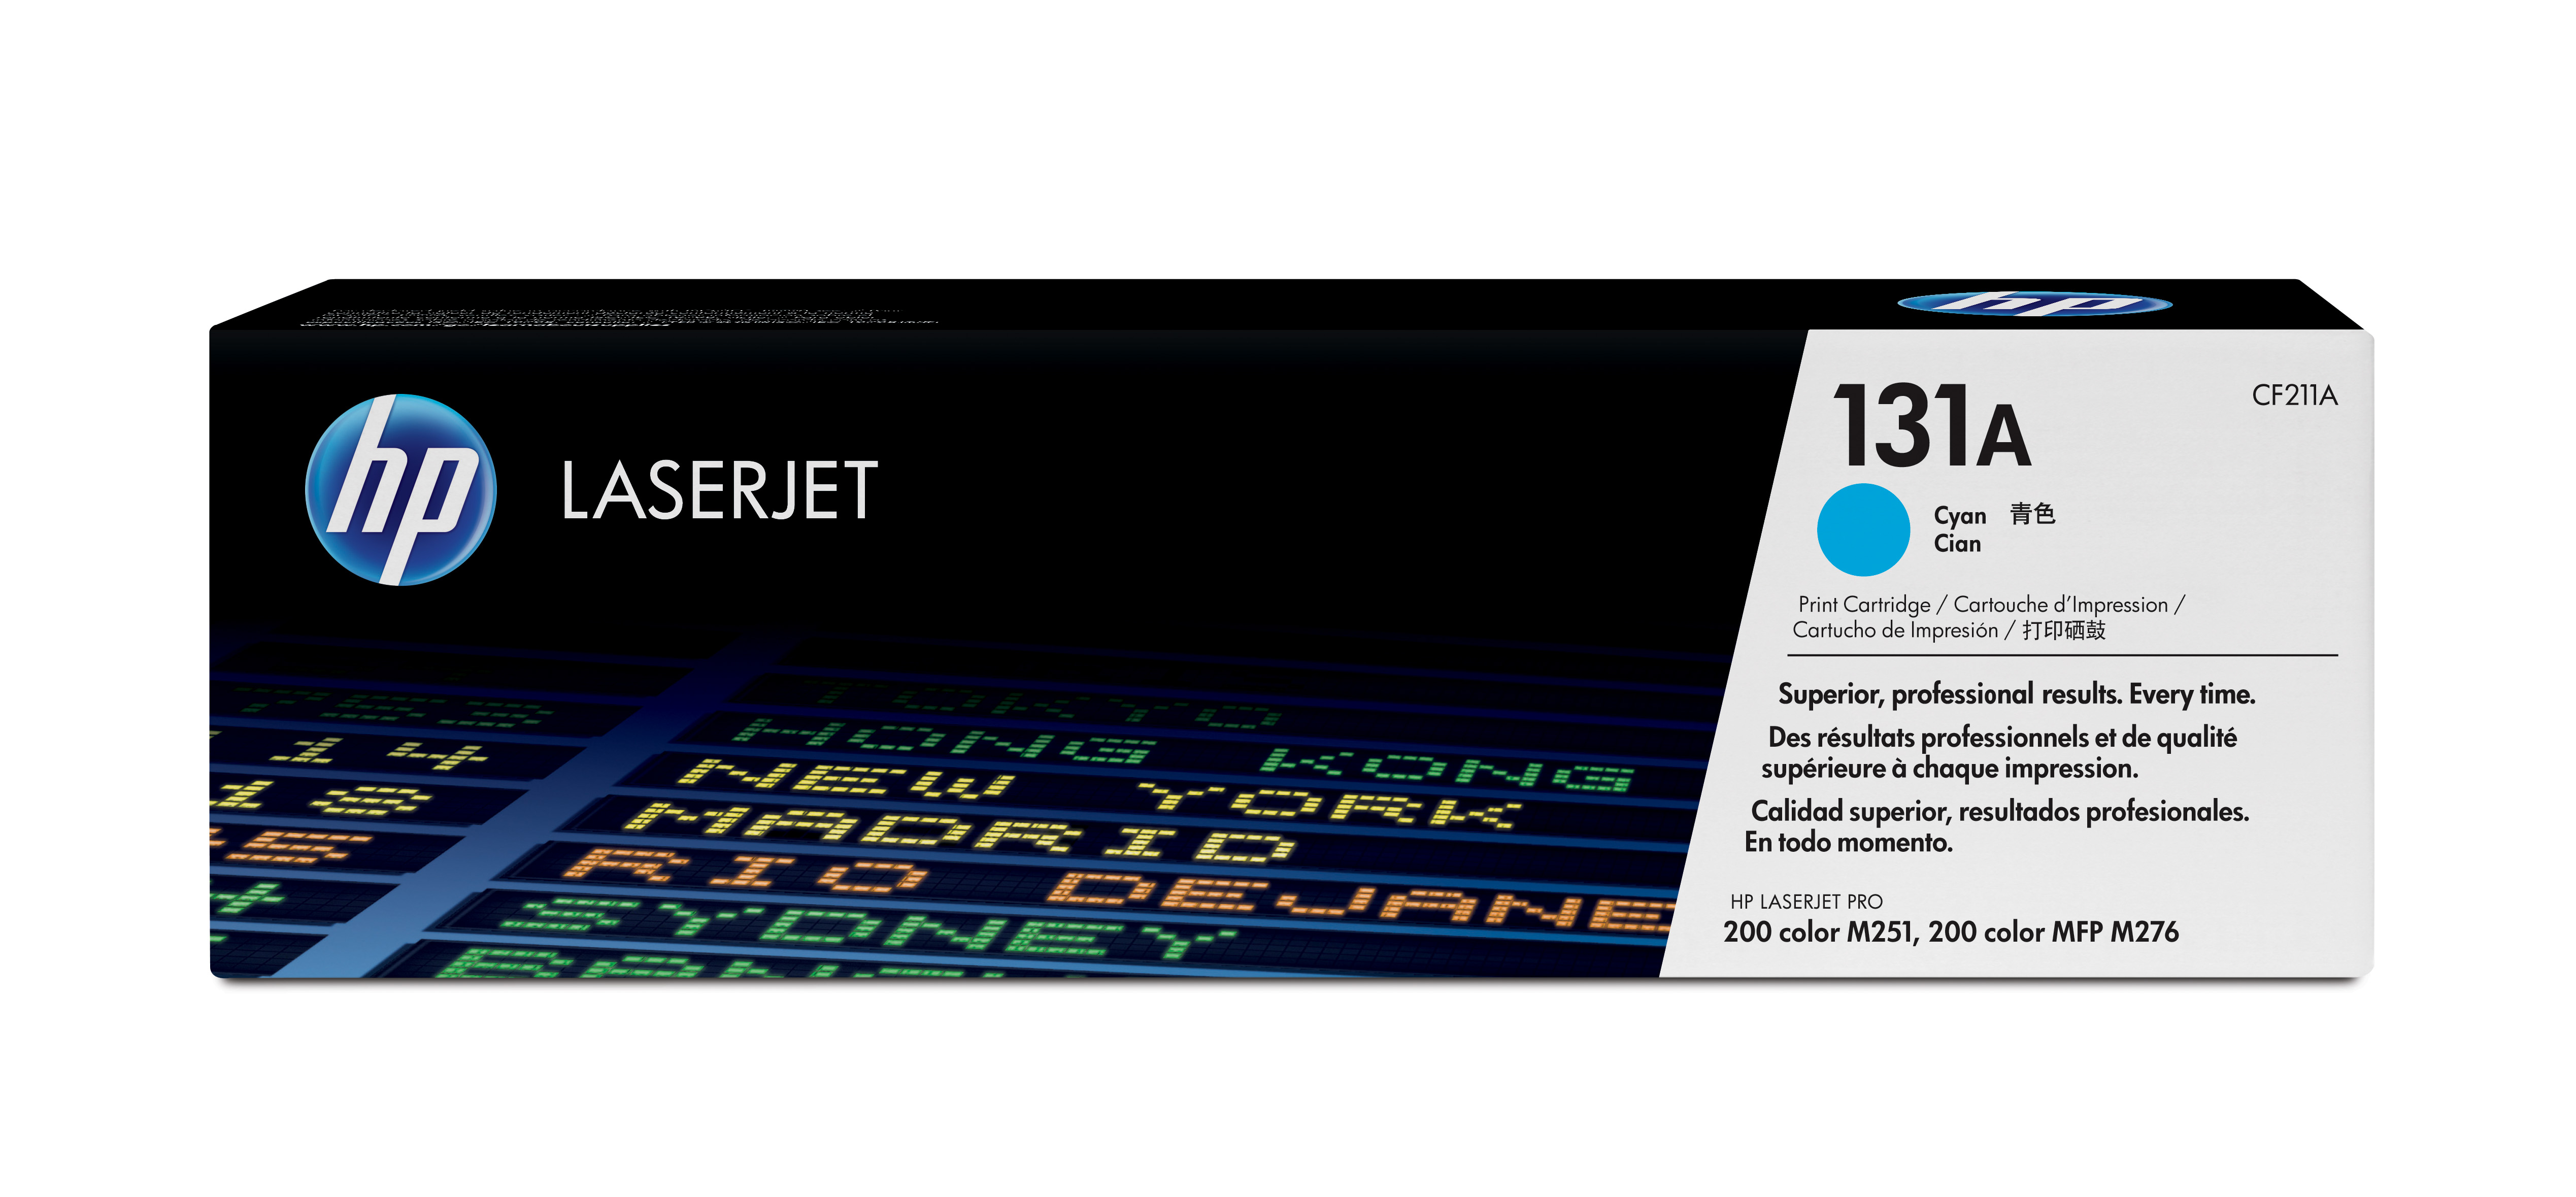 HP 131A Cyan Toner Cartridge CF211A